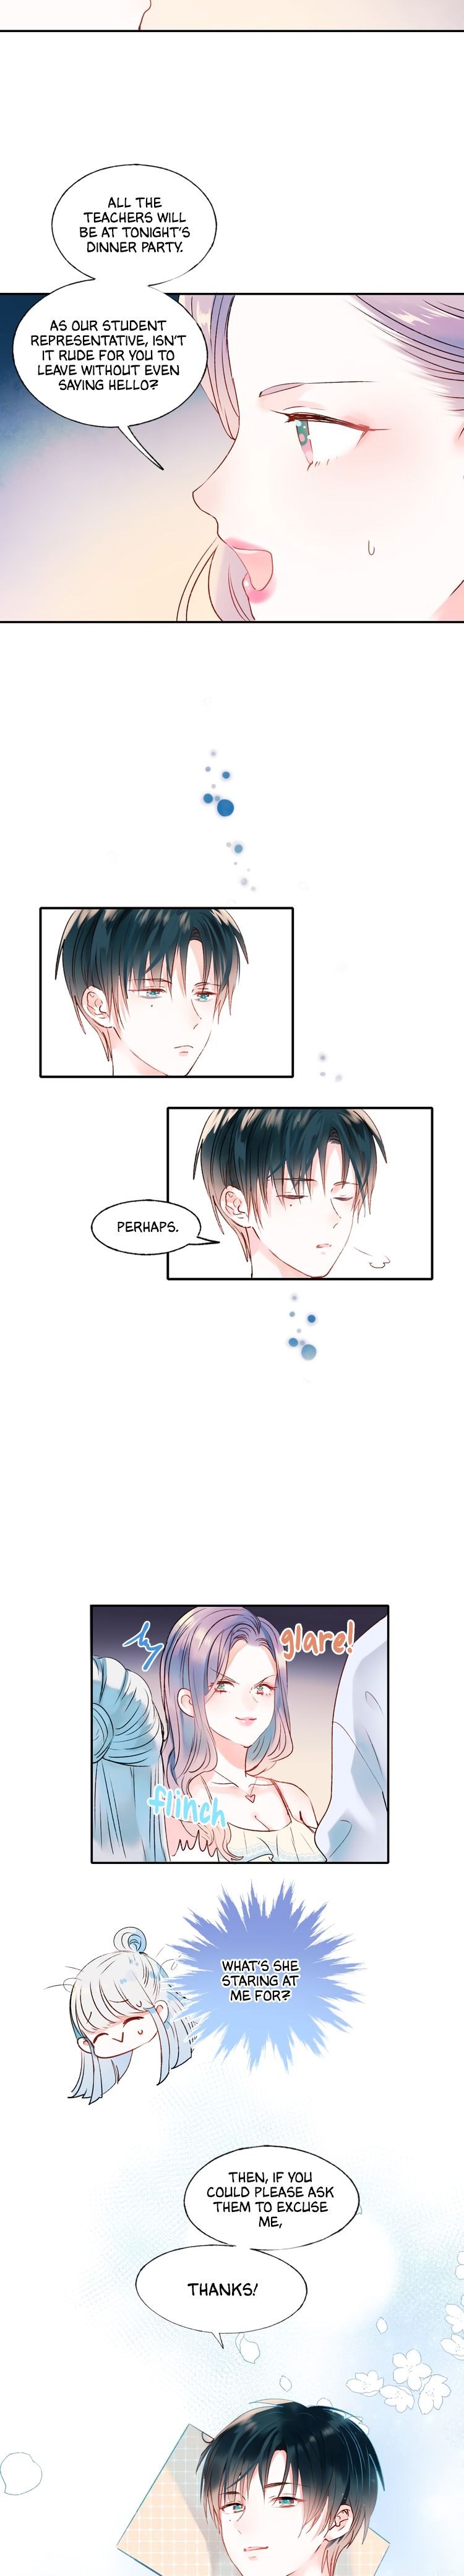 To be Winner - chapter 36 - #3